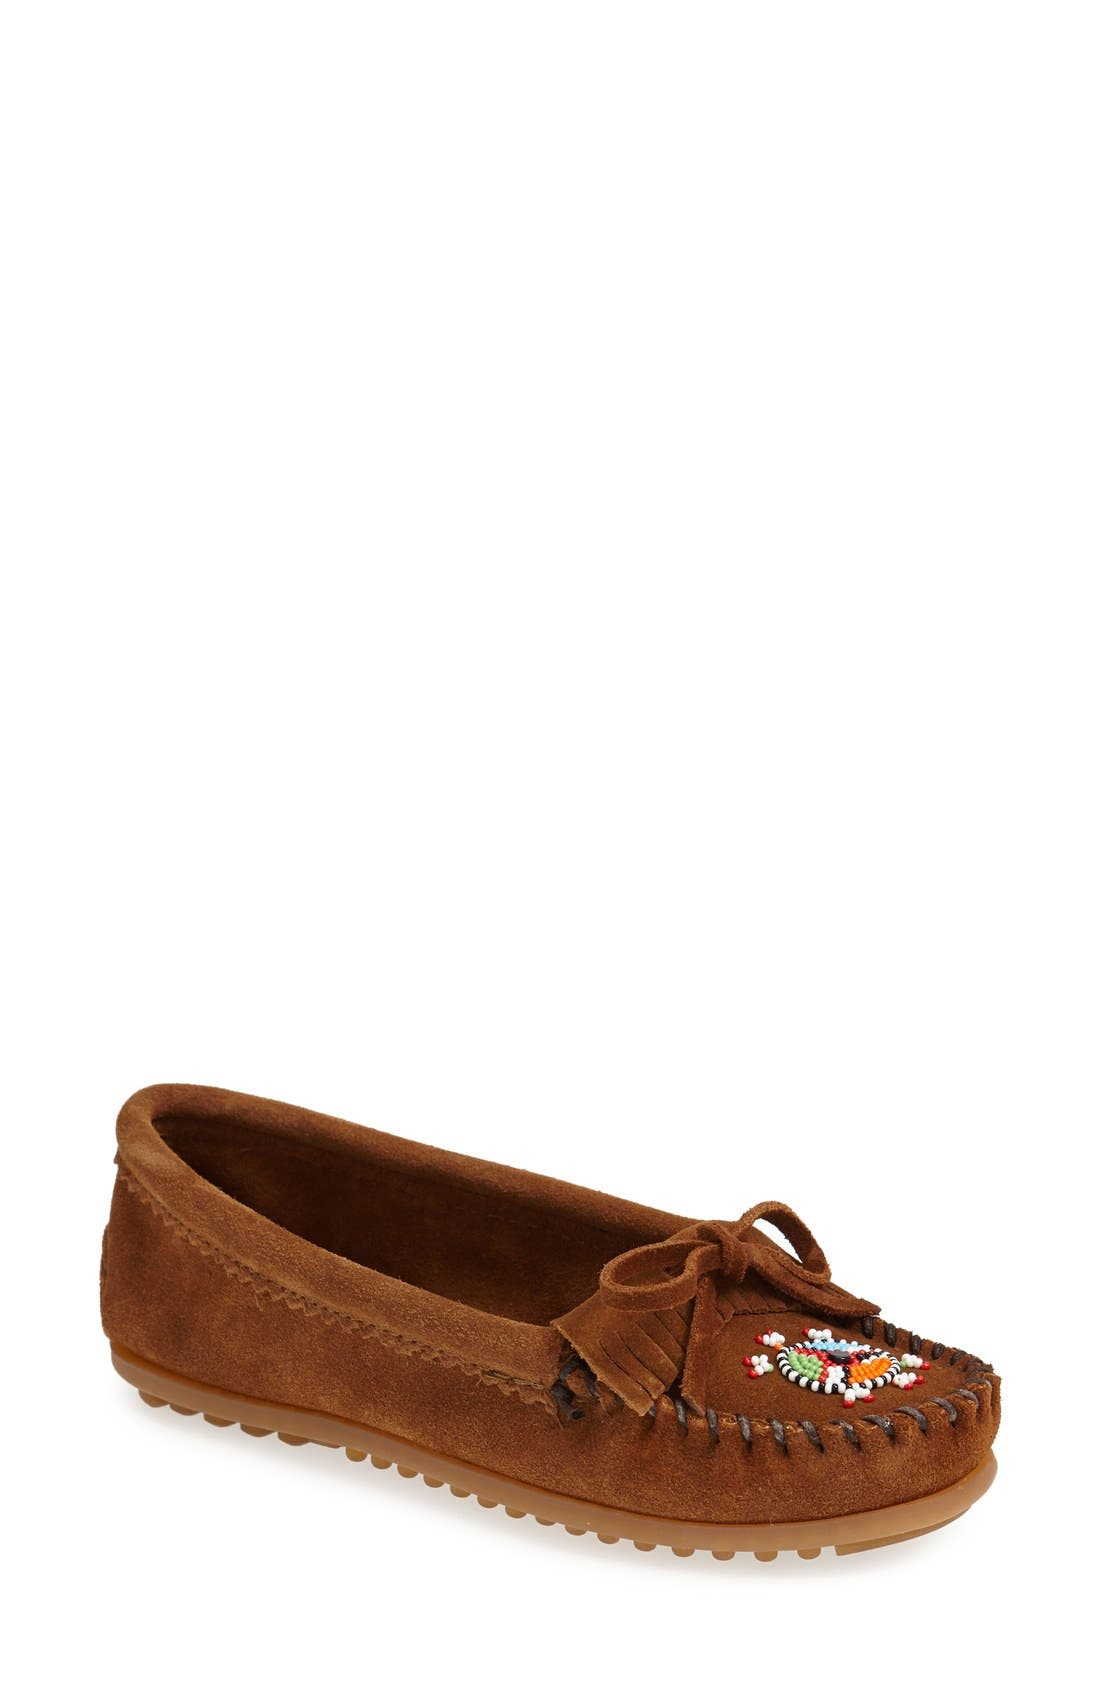 'Me to We Artisans - Kilty' Beaded Moccasin,                         Main,                         color, 230